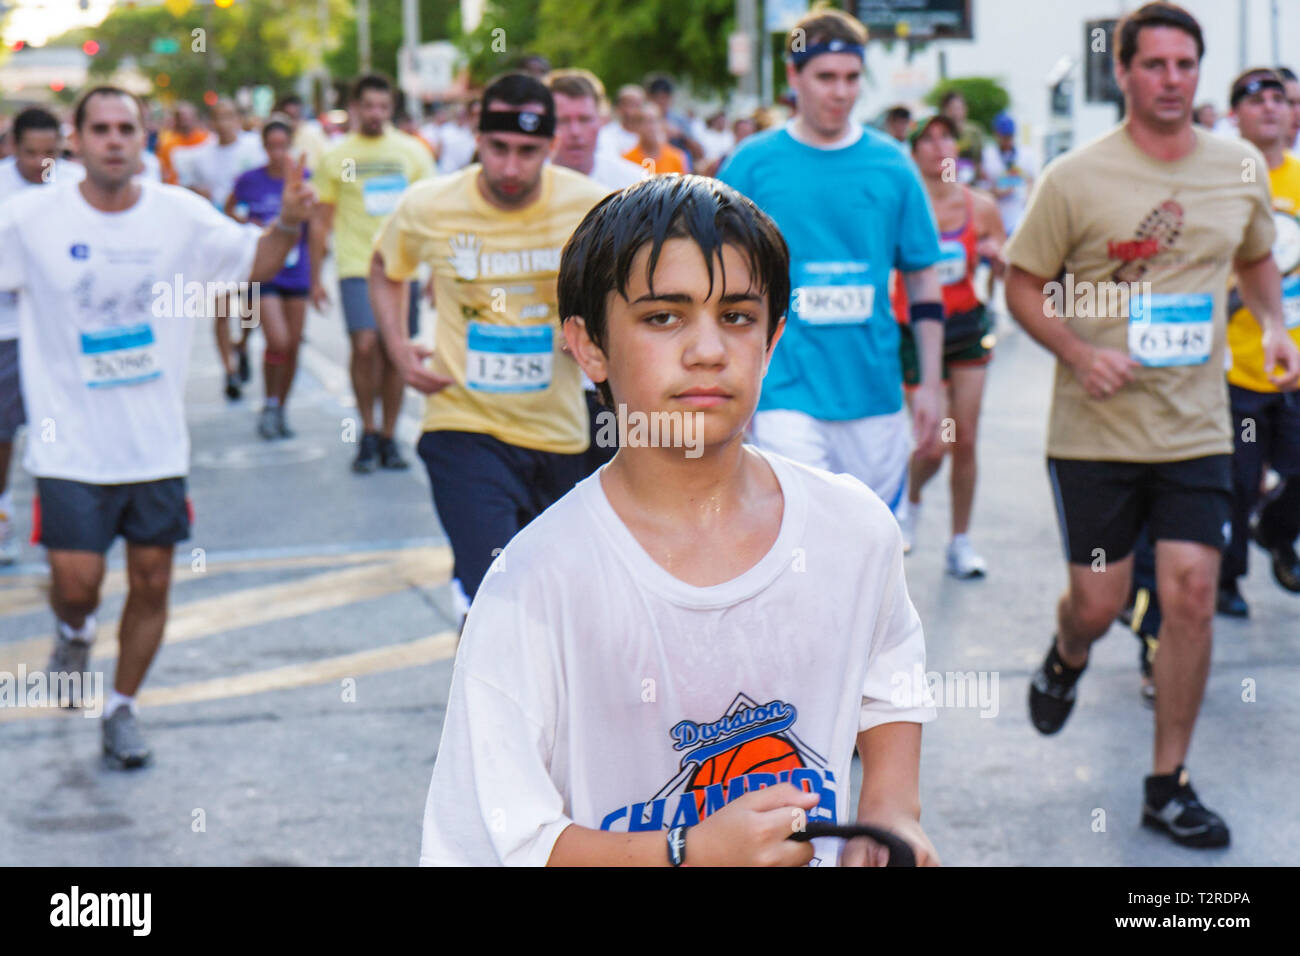 Miami Florida Bayfront Park Mercedes-Benz Miami Corporate Run community charity event runners coworkers co-workers boy teen dren - Stock Image